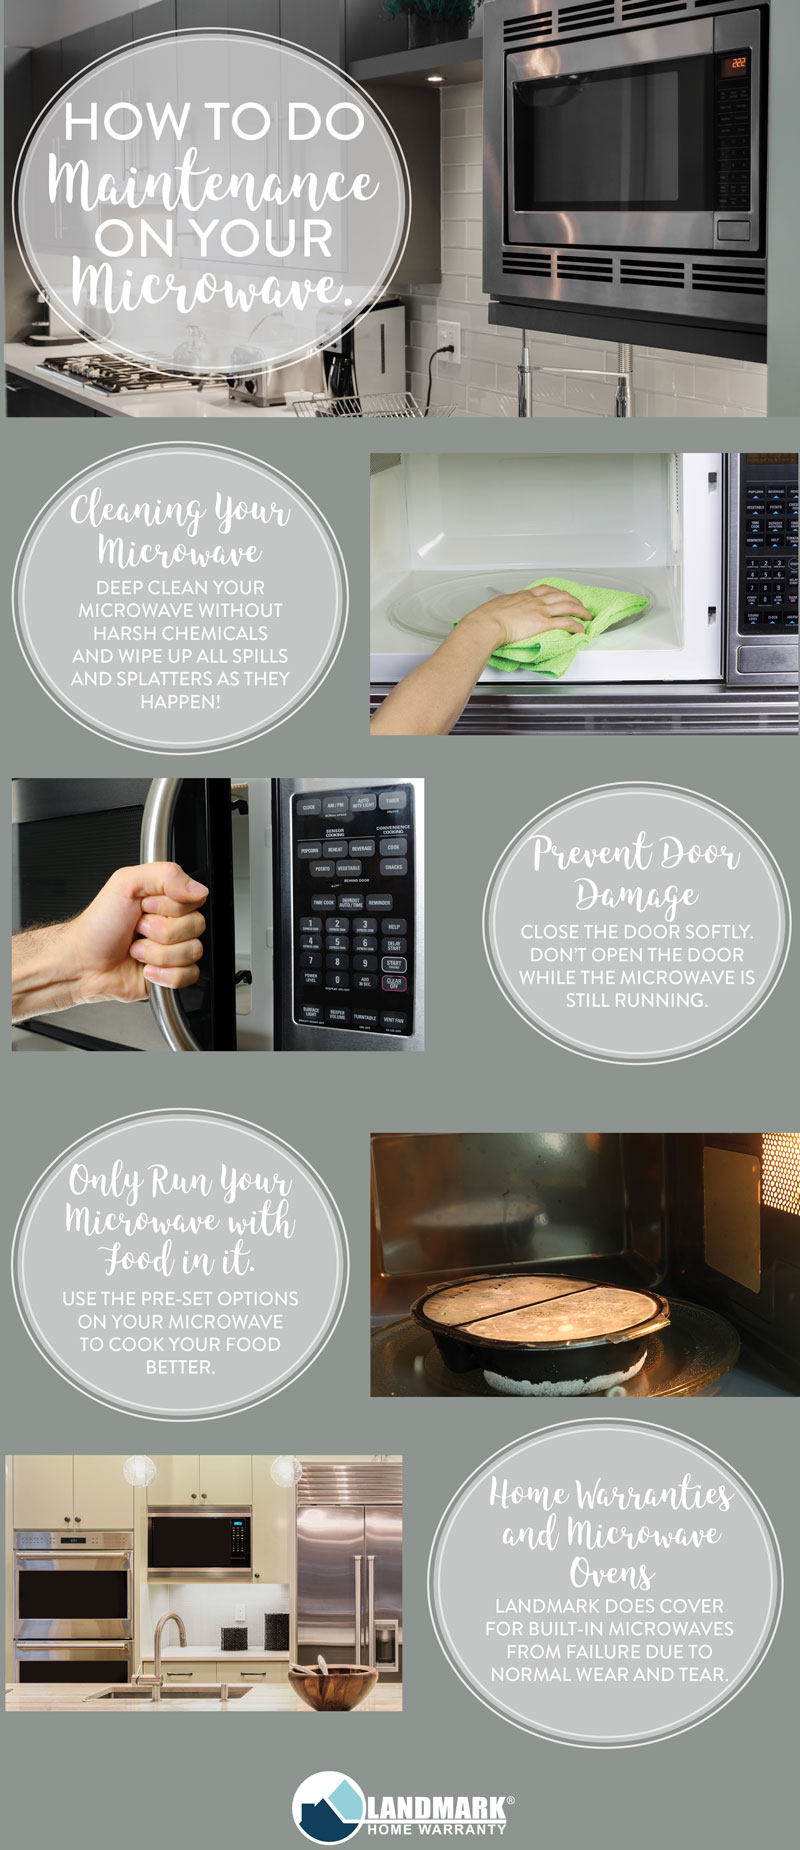 Use these microwave oven tips to keep your microwave running its entire lifespan.